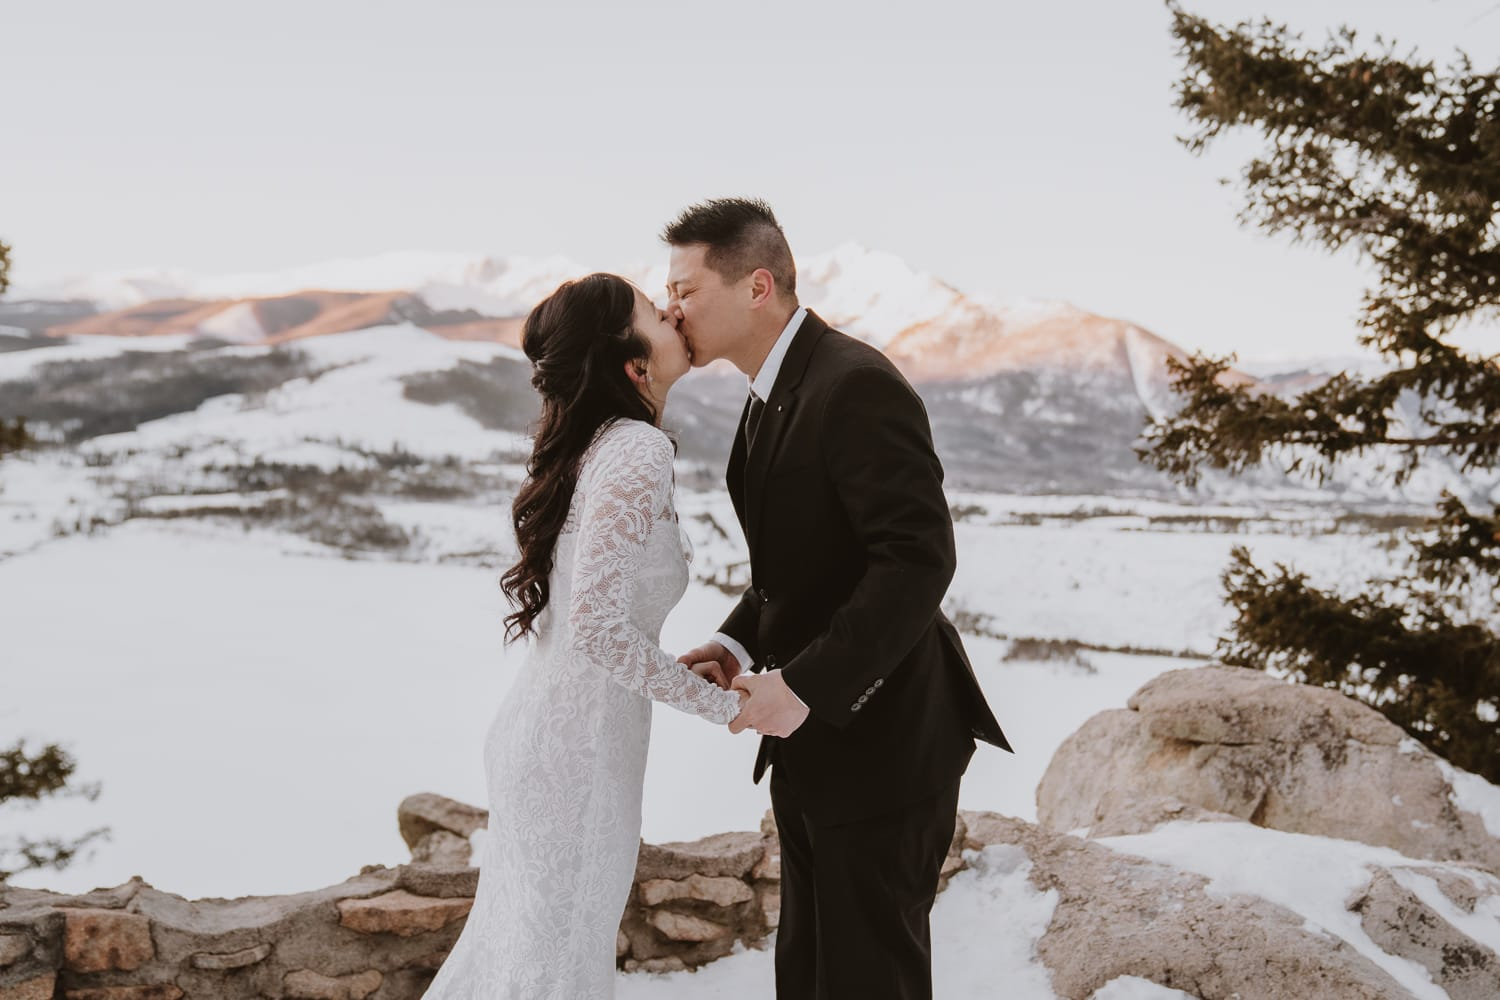 Victory and Andy eloped on a mountain top outside of Breckenridge at sunrise, and this is a photo of their first kiss!